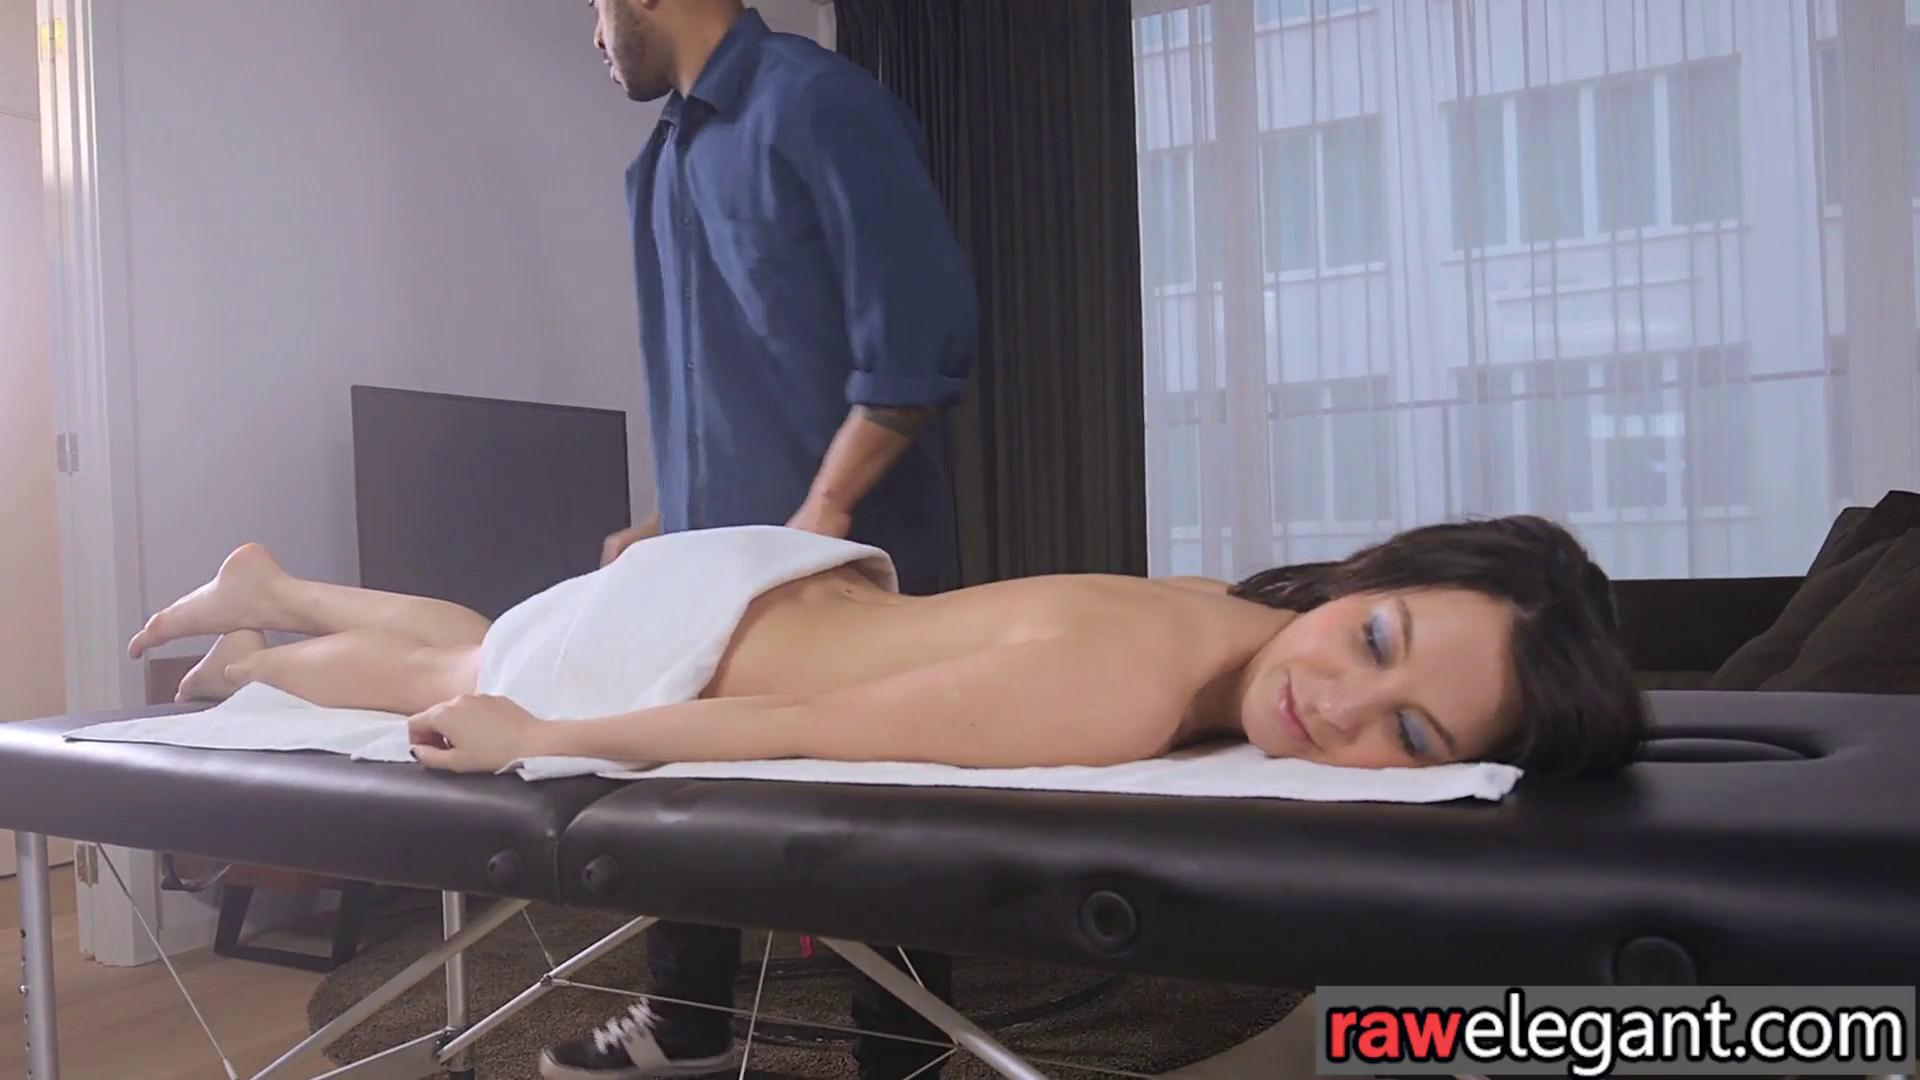 Brunette on massage table gets fucked Busty Brunette Massage Table Fucking Bubbaporn Com